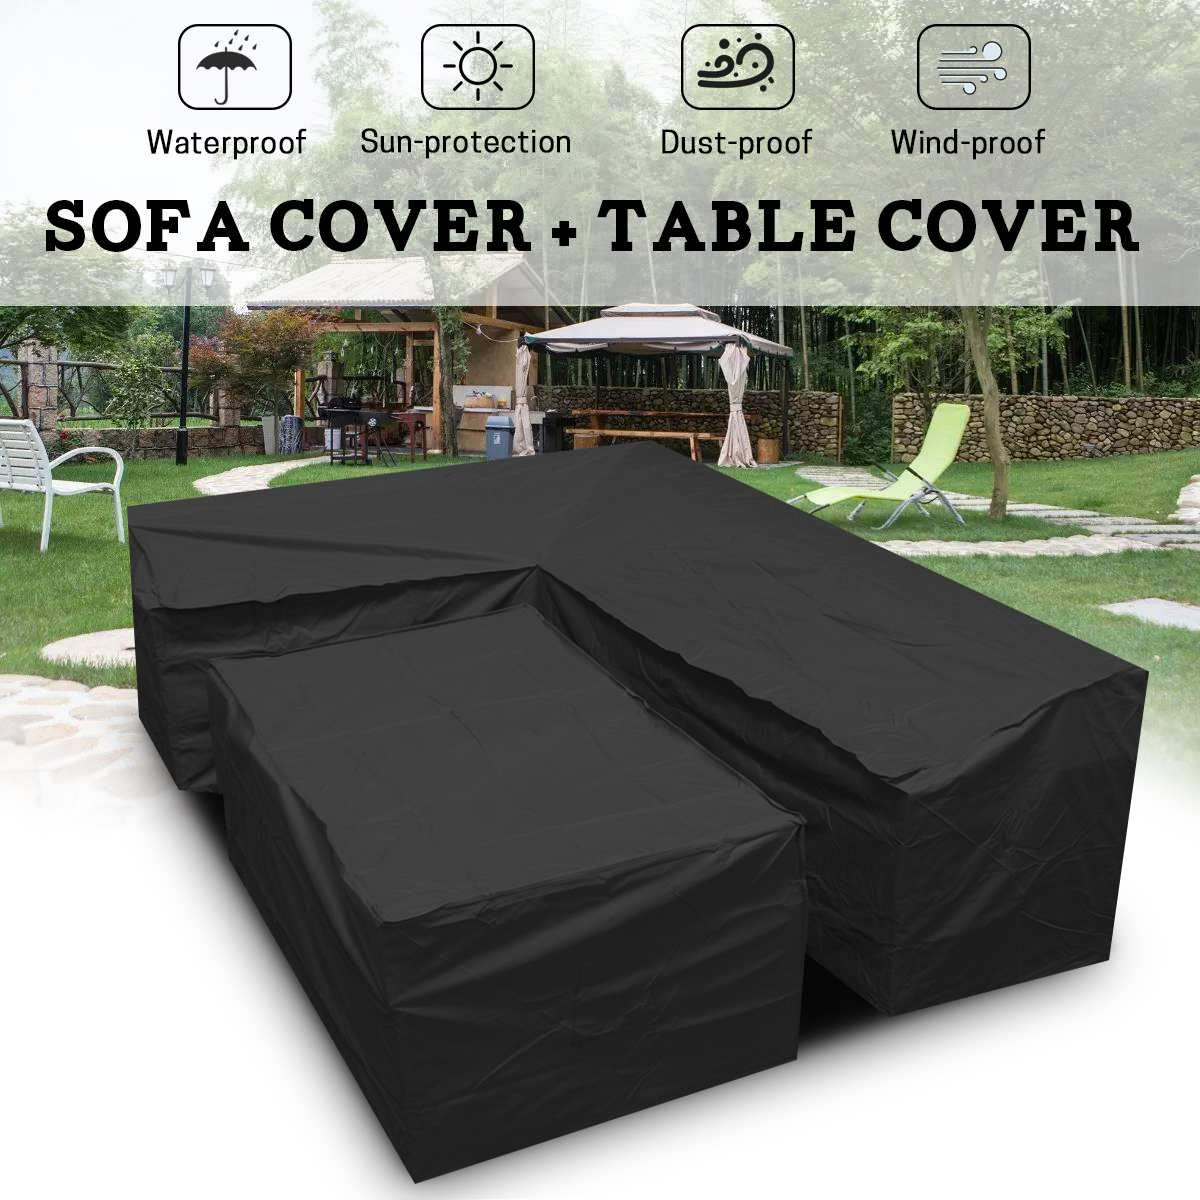 Us 3069 32 Offwaterproof Shape Furniture Covers Outdoor Patio Garden Lrain Snow Chair Covers Sofa Table Chair Dust Proof Protector Cover In in proportions 1200 X 1200